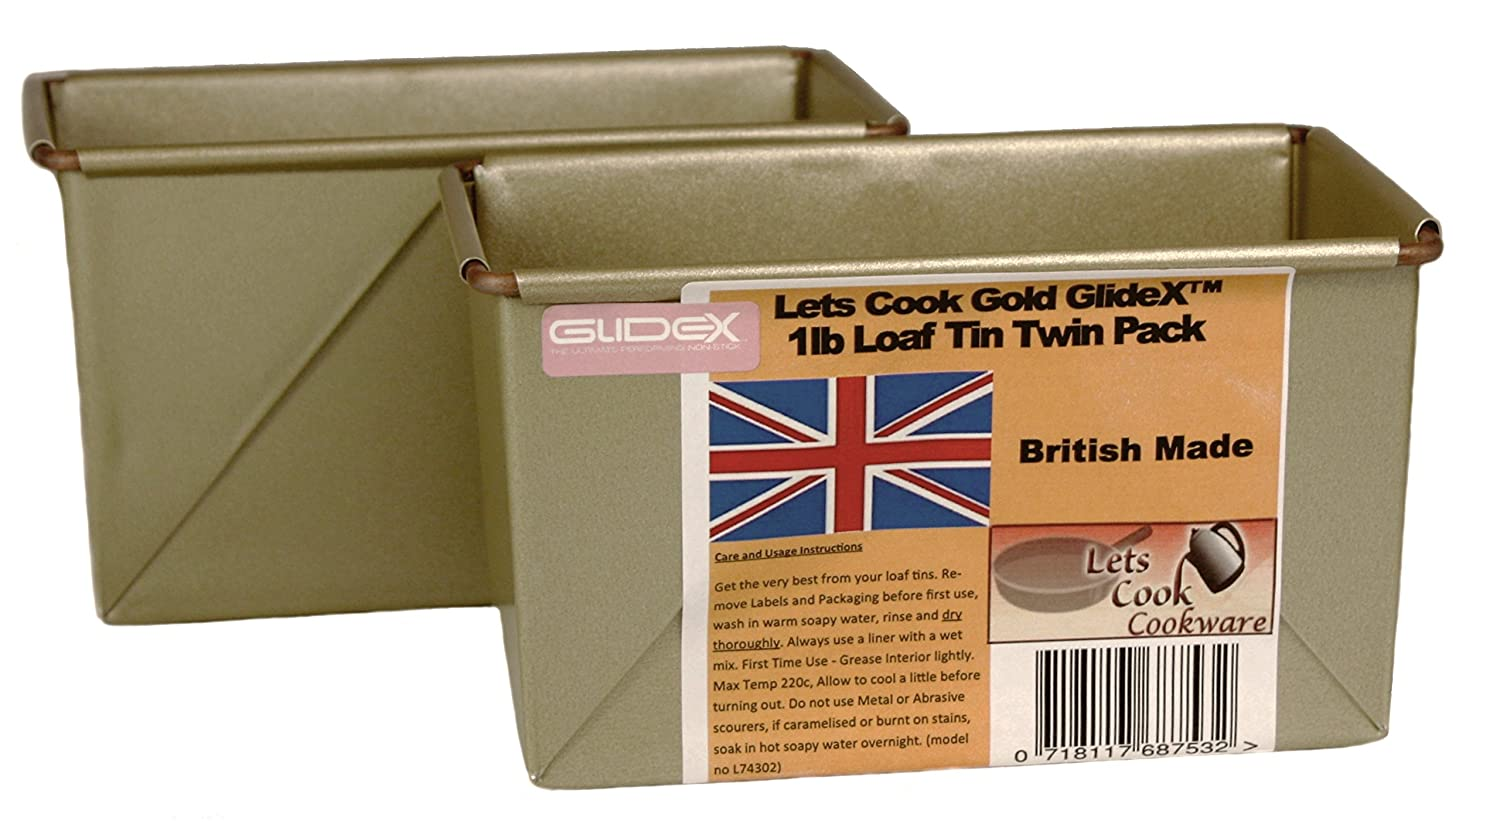 1LB Traditional Farmhouse Loaf Tins, Twin Pack, Box Style, Hand Made, British Made with Gold GlideX Non Stick by Lets Cook Cookware